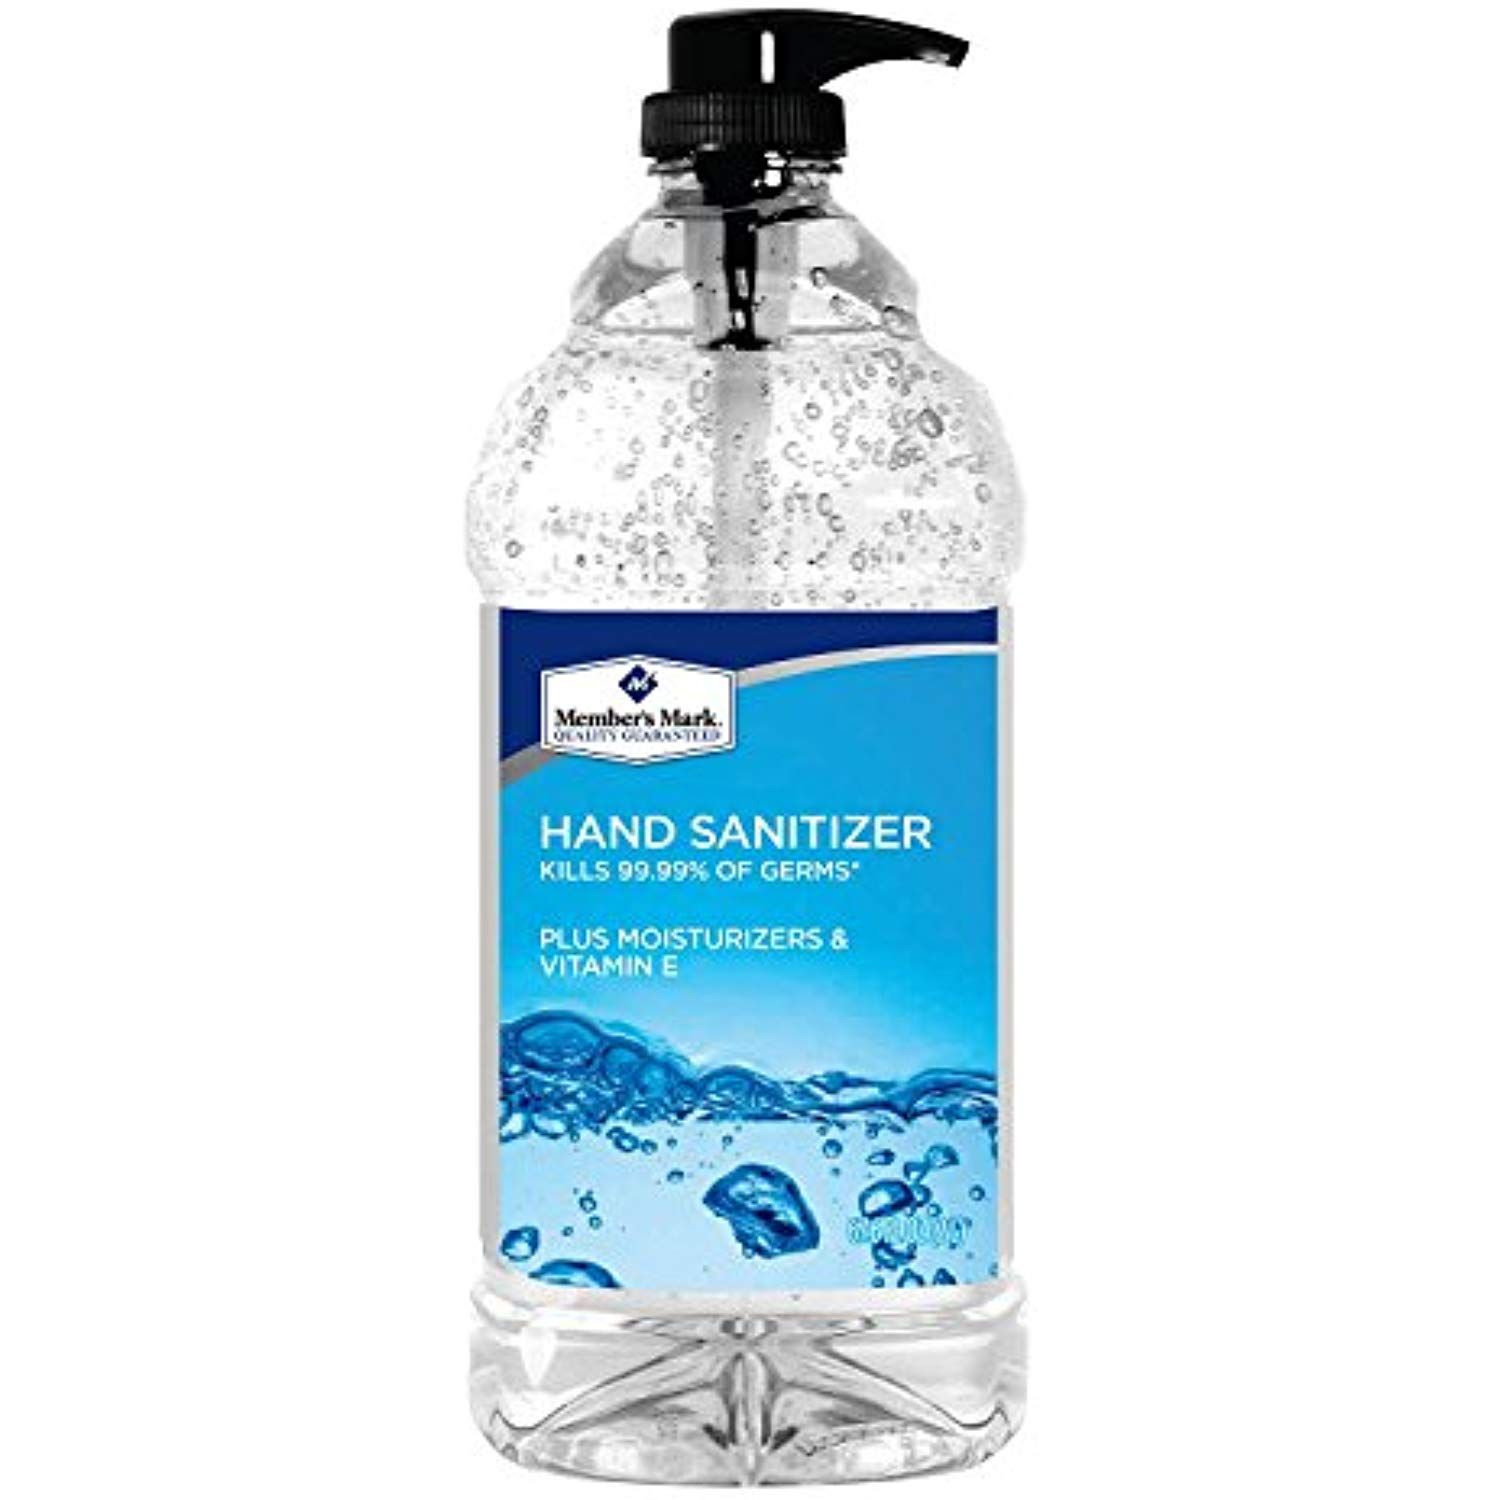 Members Mark Hand Sanitizer 67 6 Fl Oz 2 L Continue To The